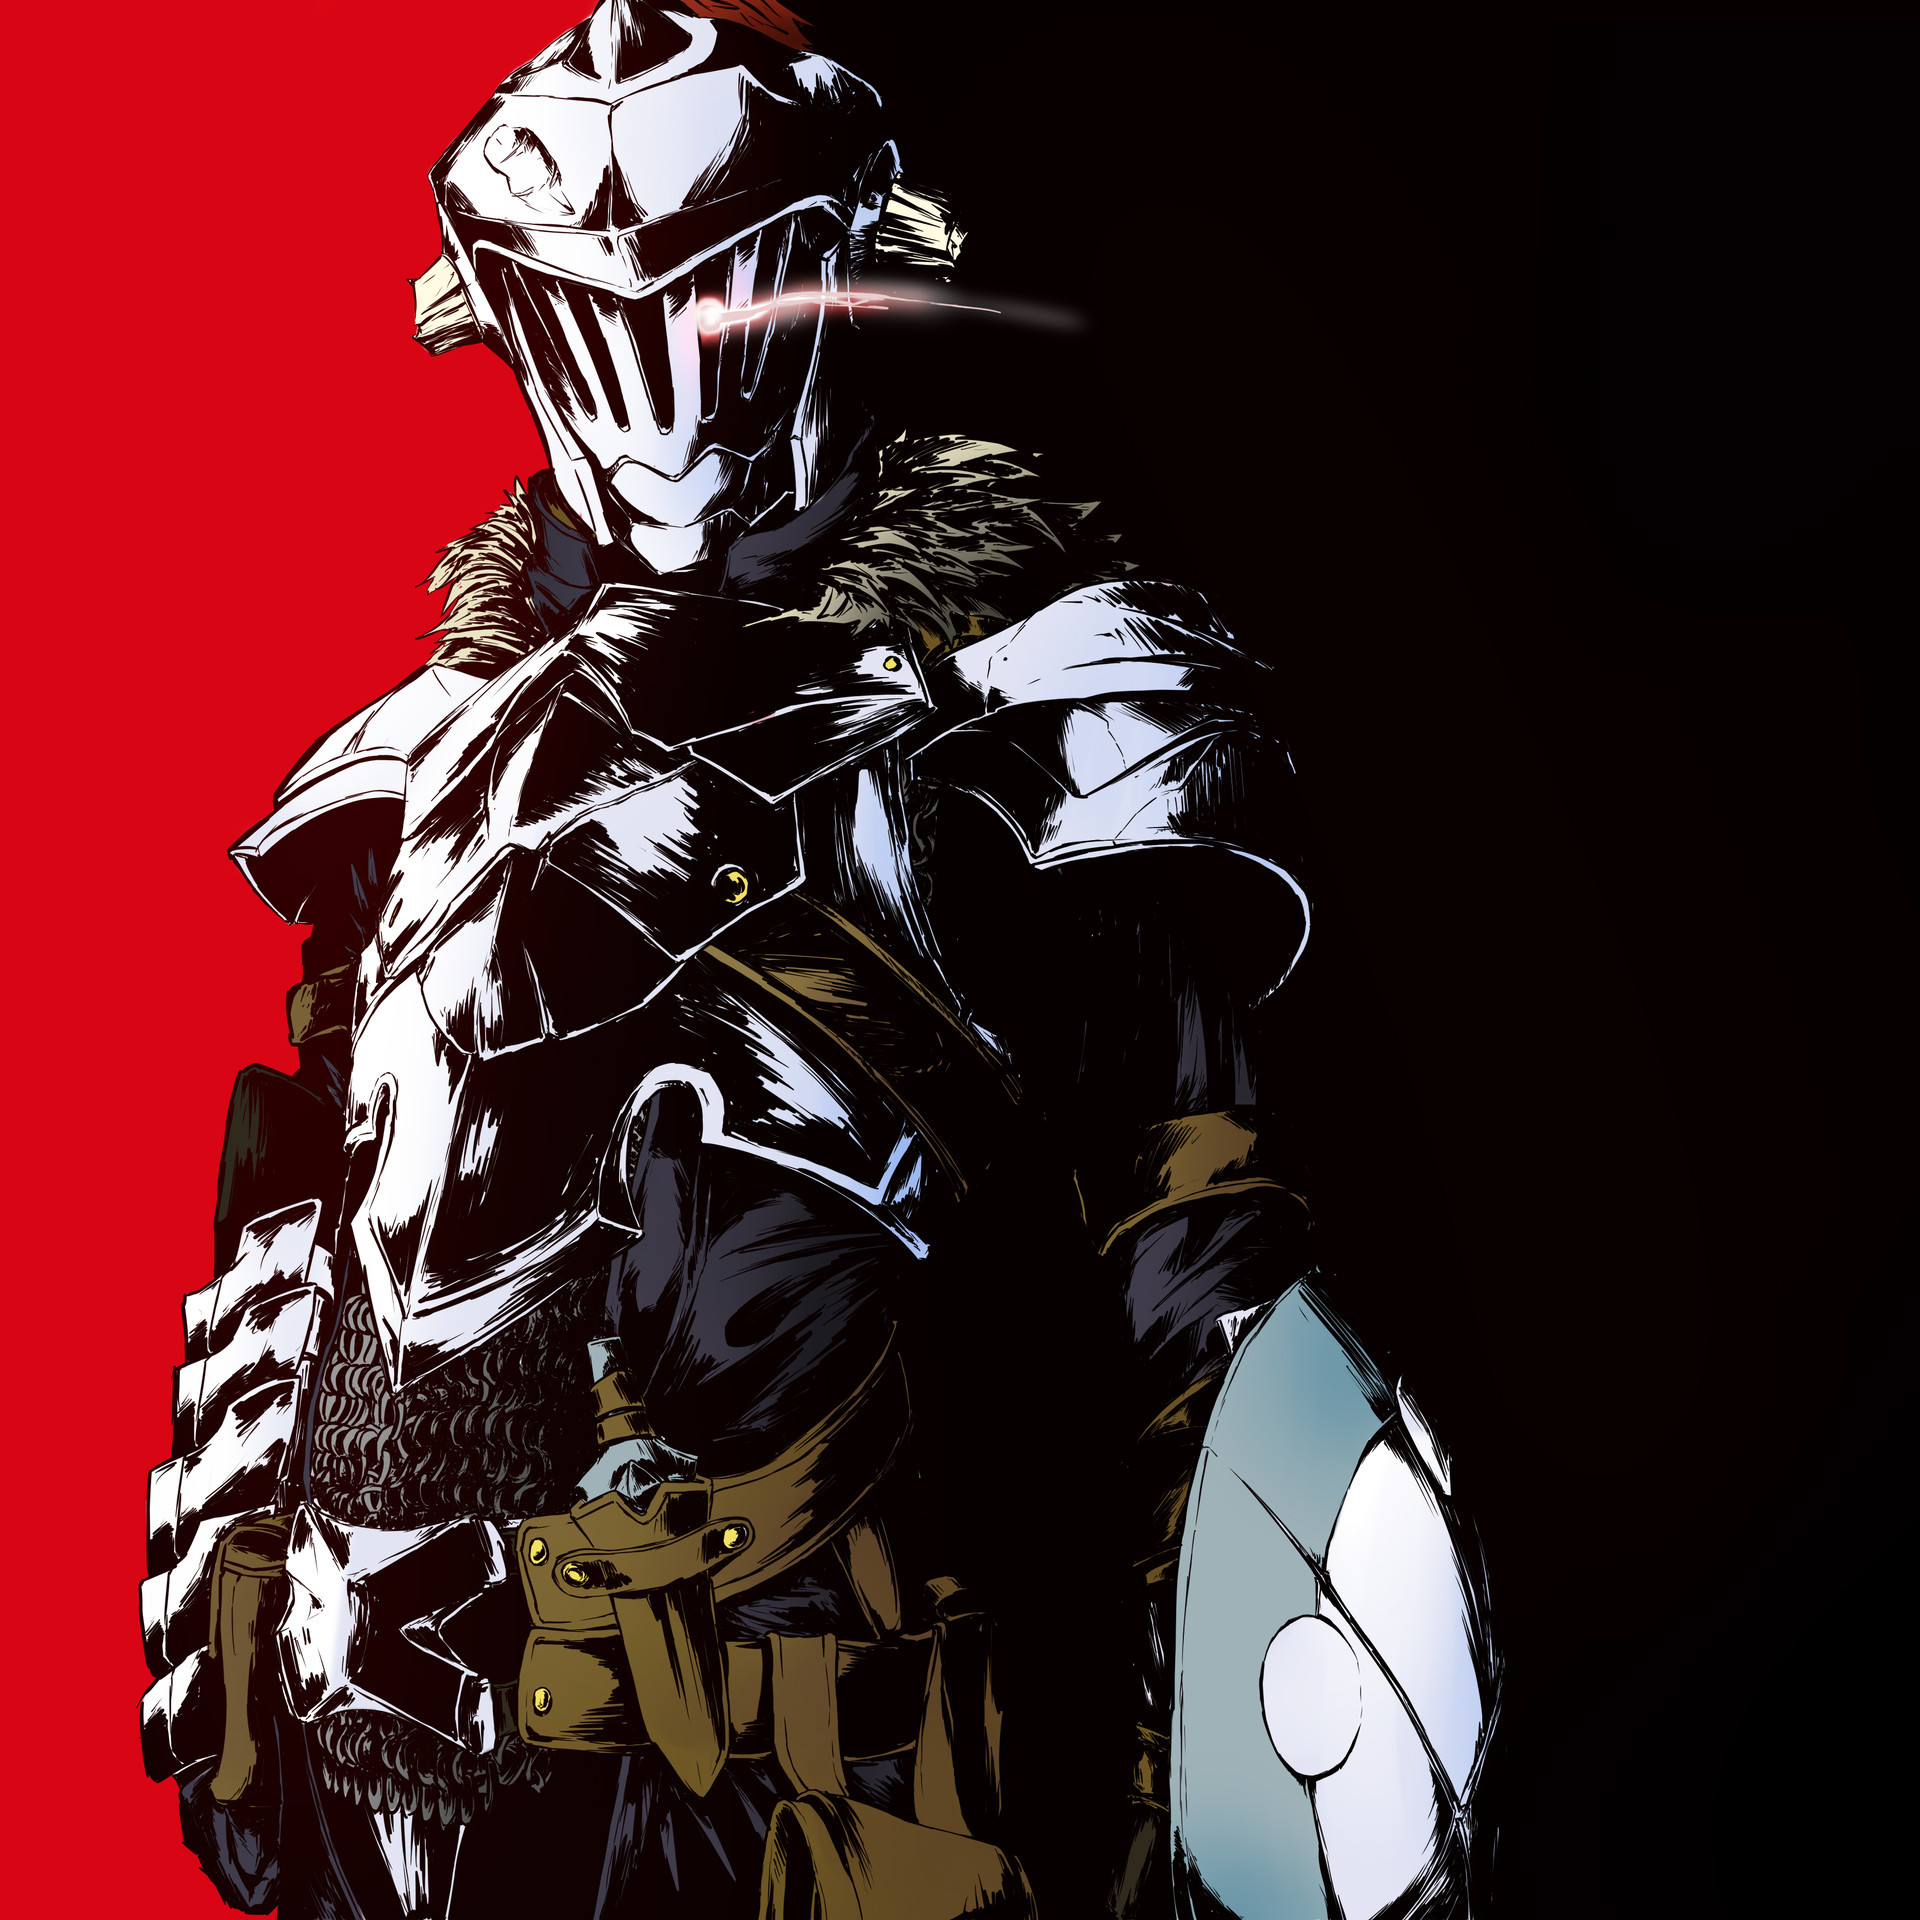 1920x1920 Epic goblin slayer artwork arthawardhana djatmiko goblinslayer jpg   Slayer artwork